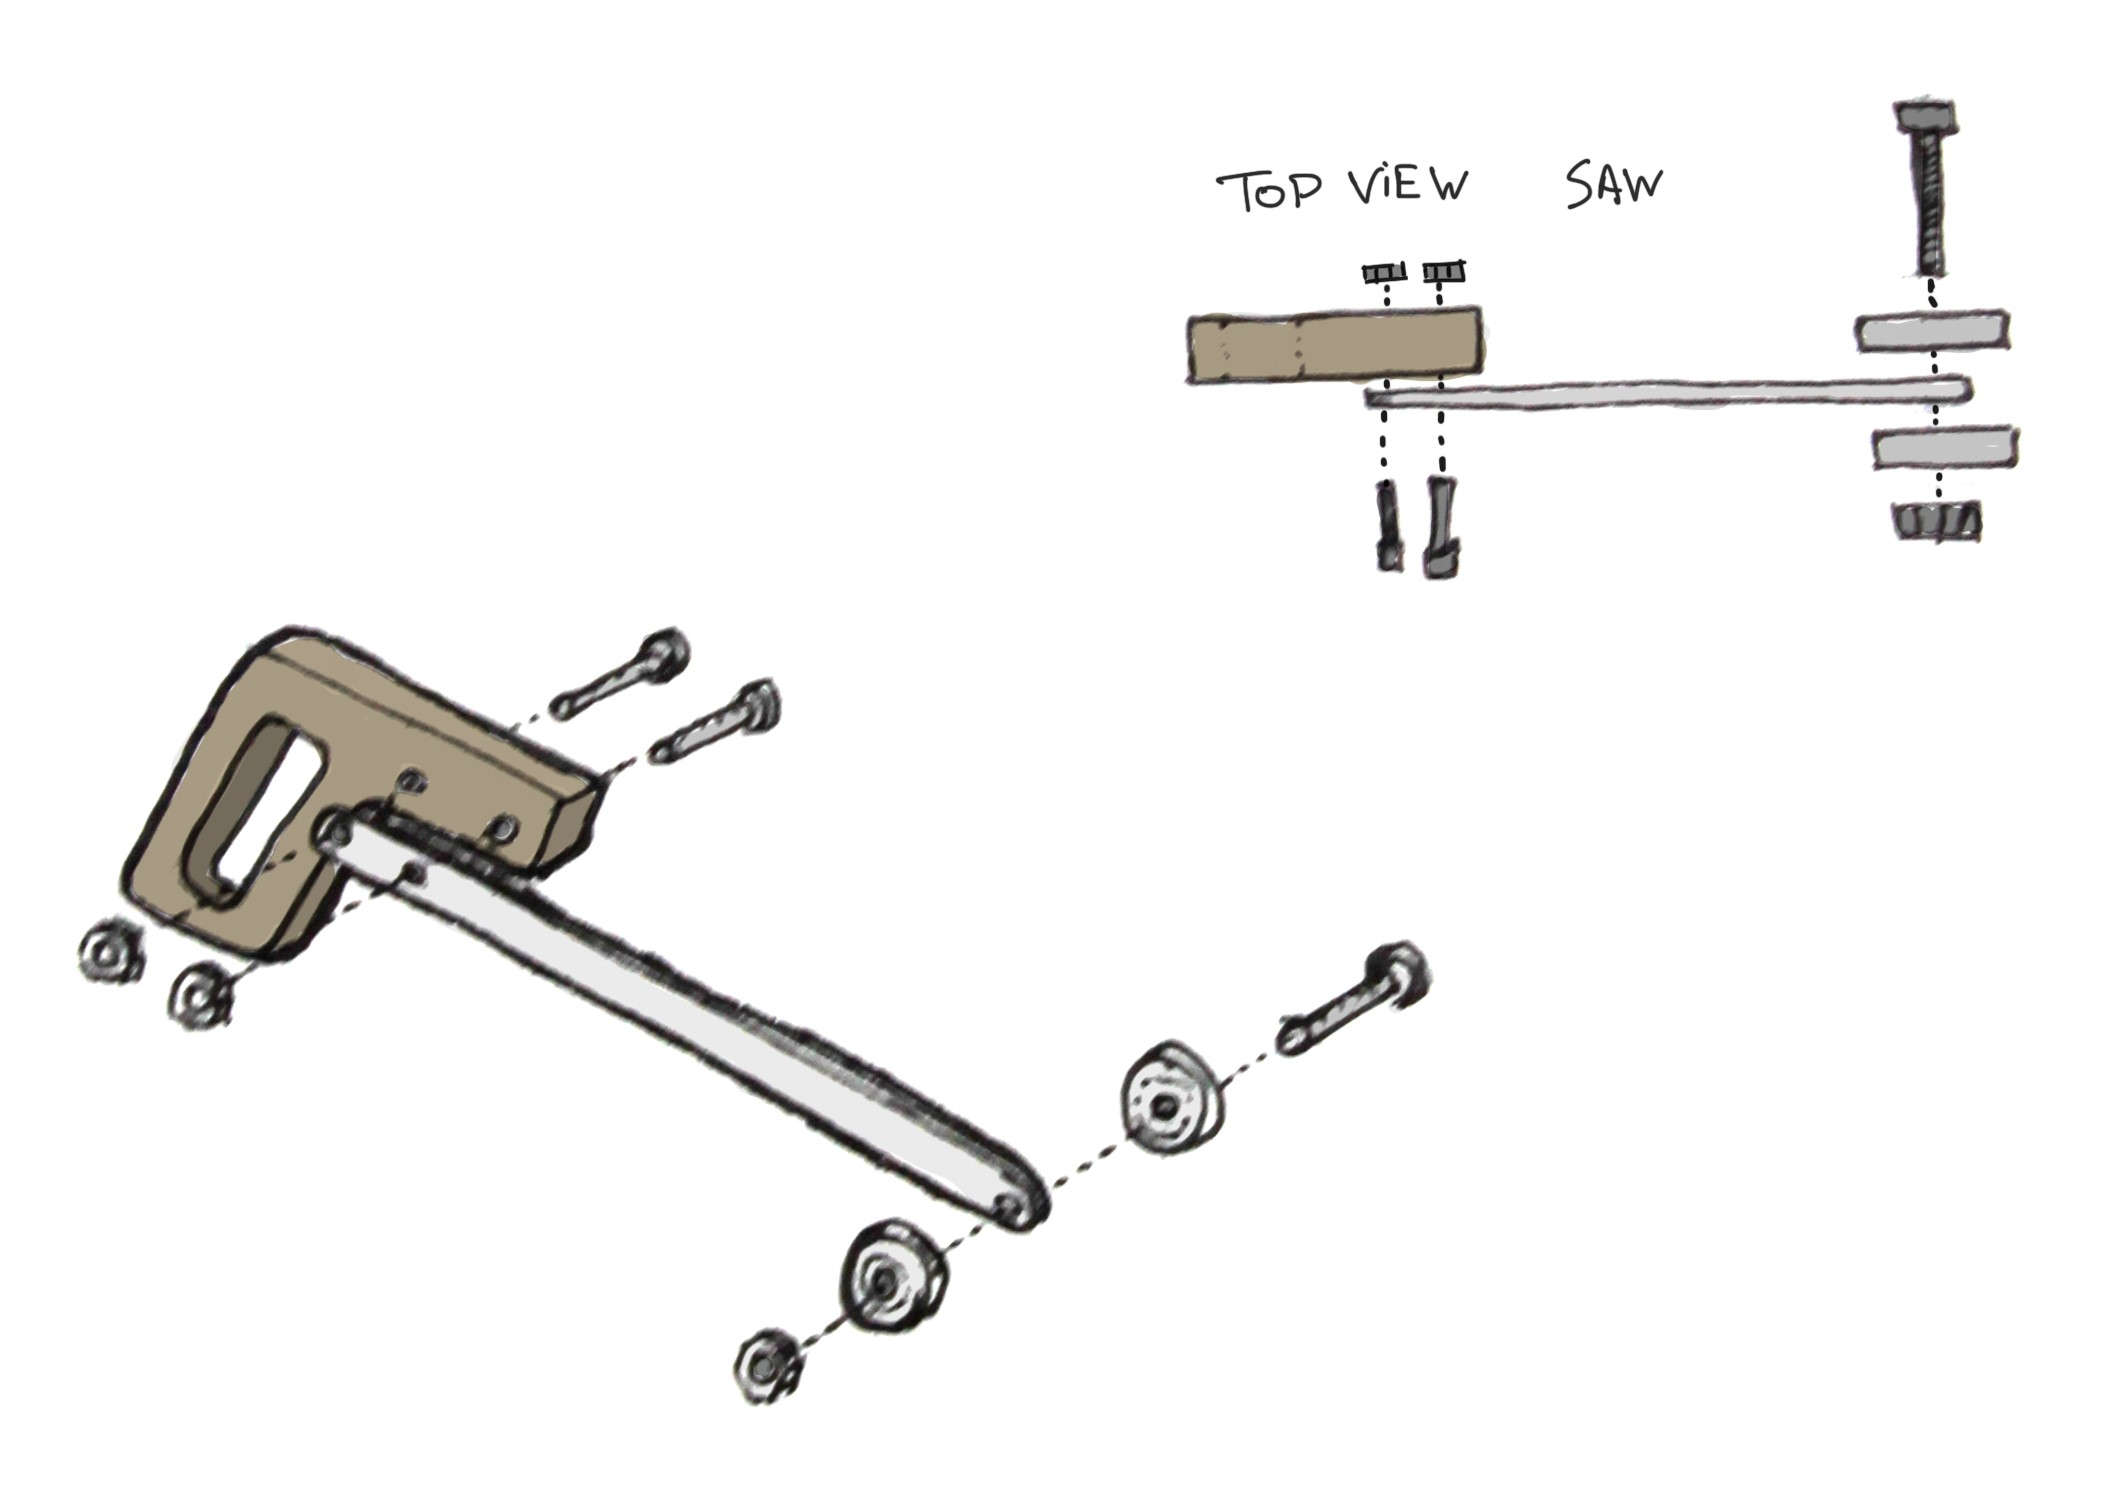 Picture of Assembling the Saw